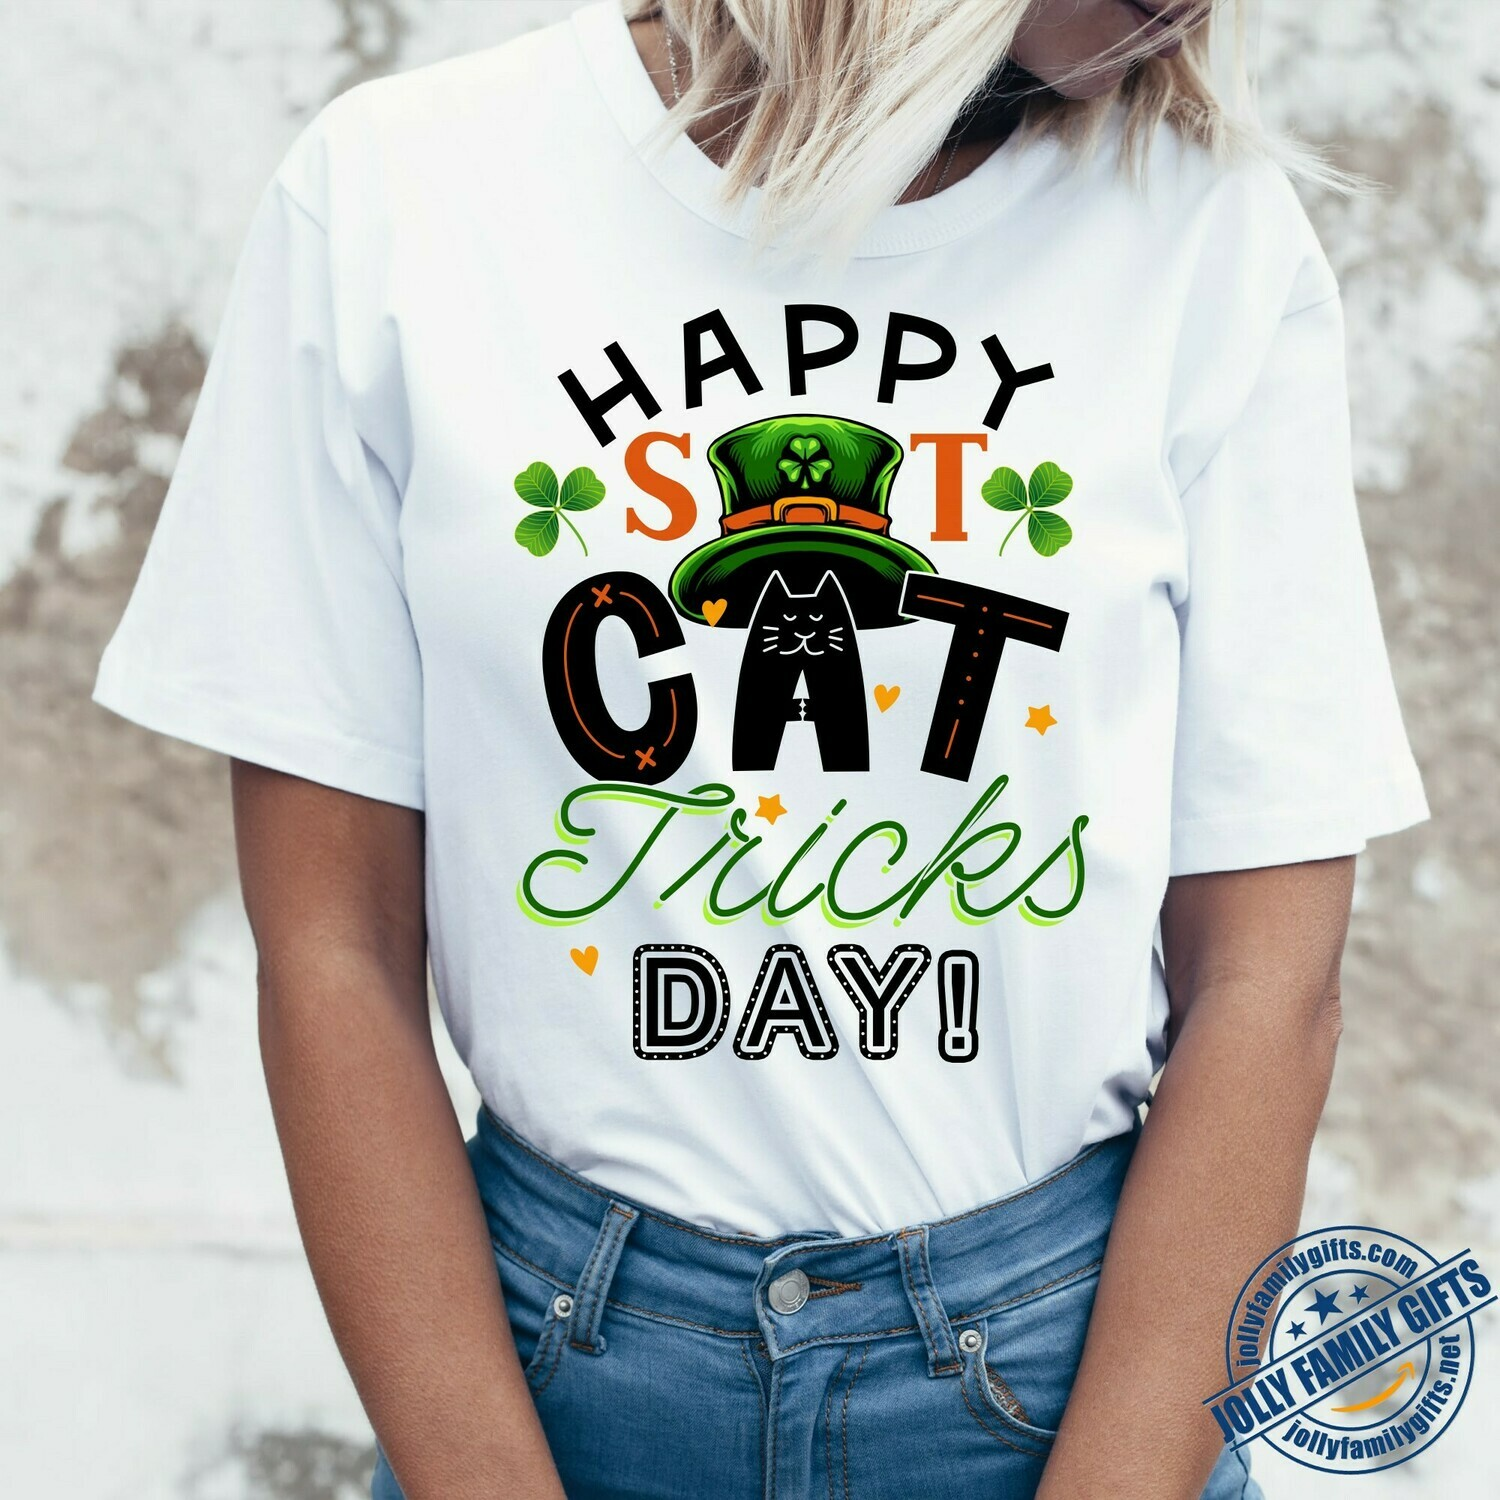 Happy St. Catricks Day My Cat Is My Lucky Charm Happy Patrick's Day Cats Caticorn Leprechaun Paddy's Day  Unisex T-Shirt Hoodie Sweatshirt Sweater Plus Size for Ladies Women Men Kids Youth Gifts Tee